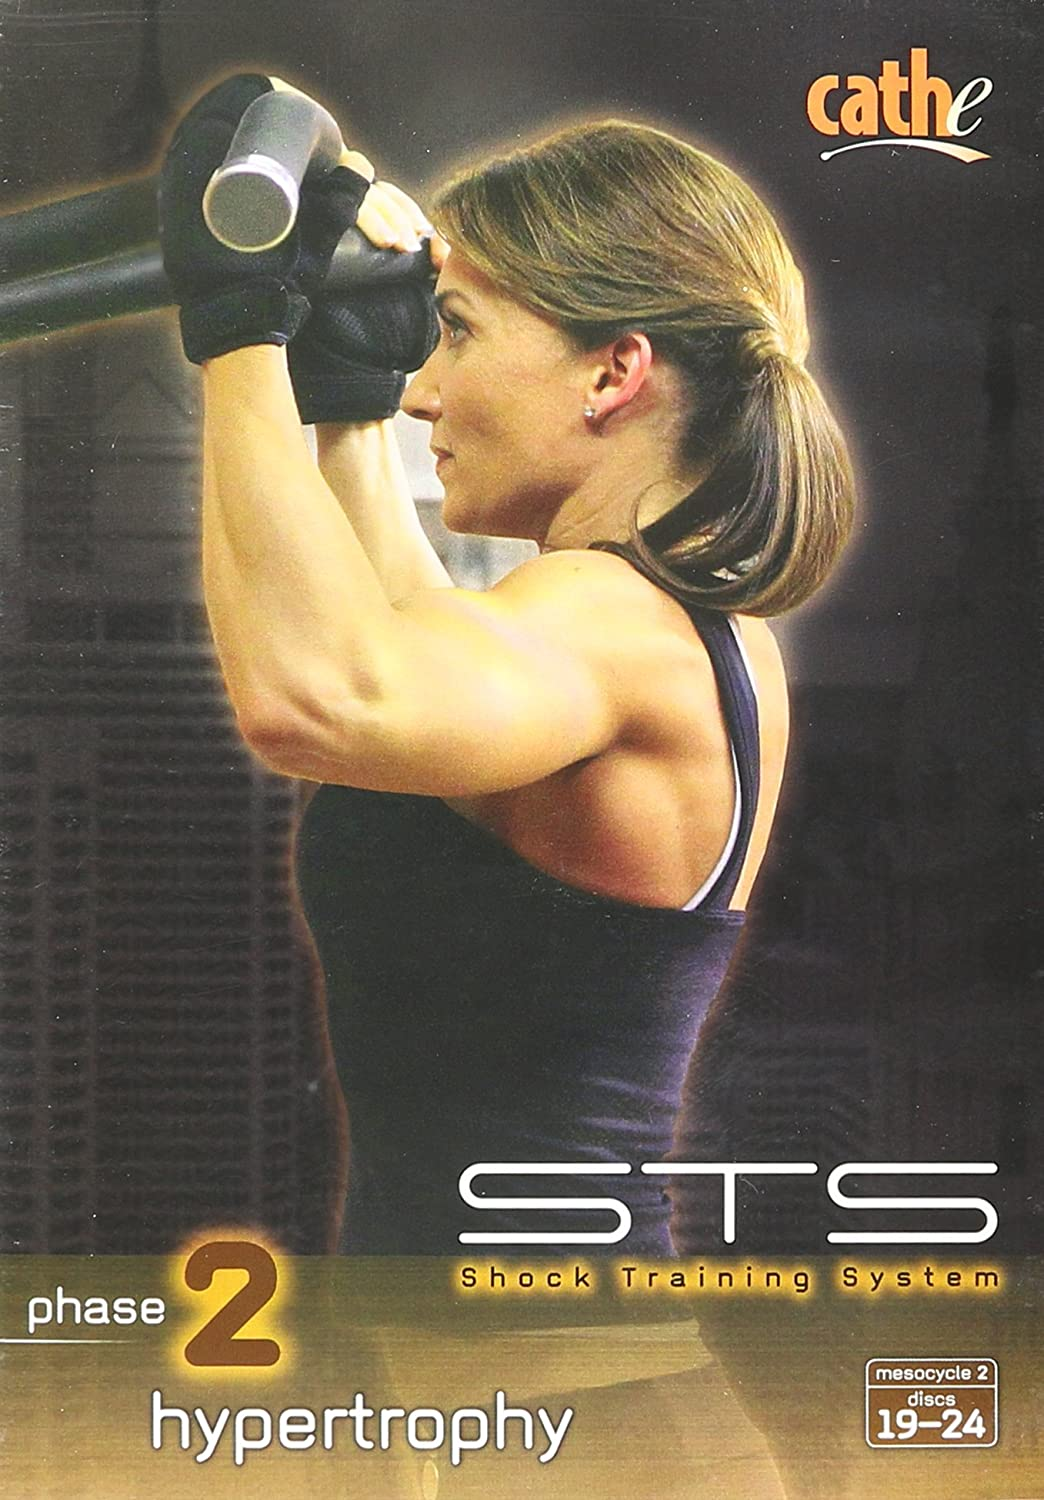 Communication on this topic: Cathe Friedrichs Shock Training System (STS), cathe-friedrichs-shock-training-system-sts/